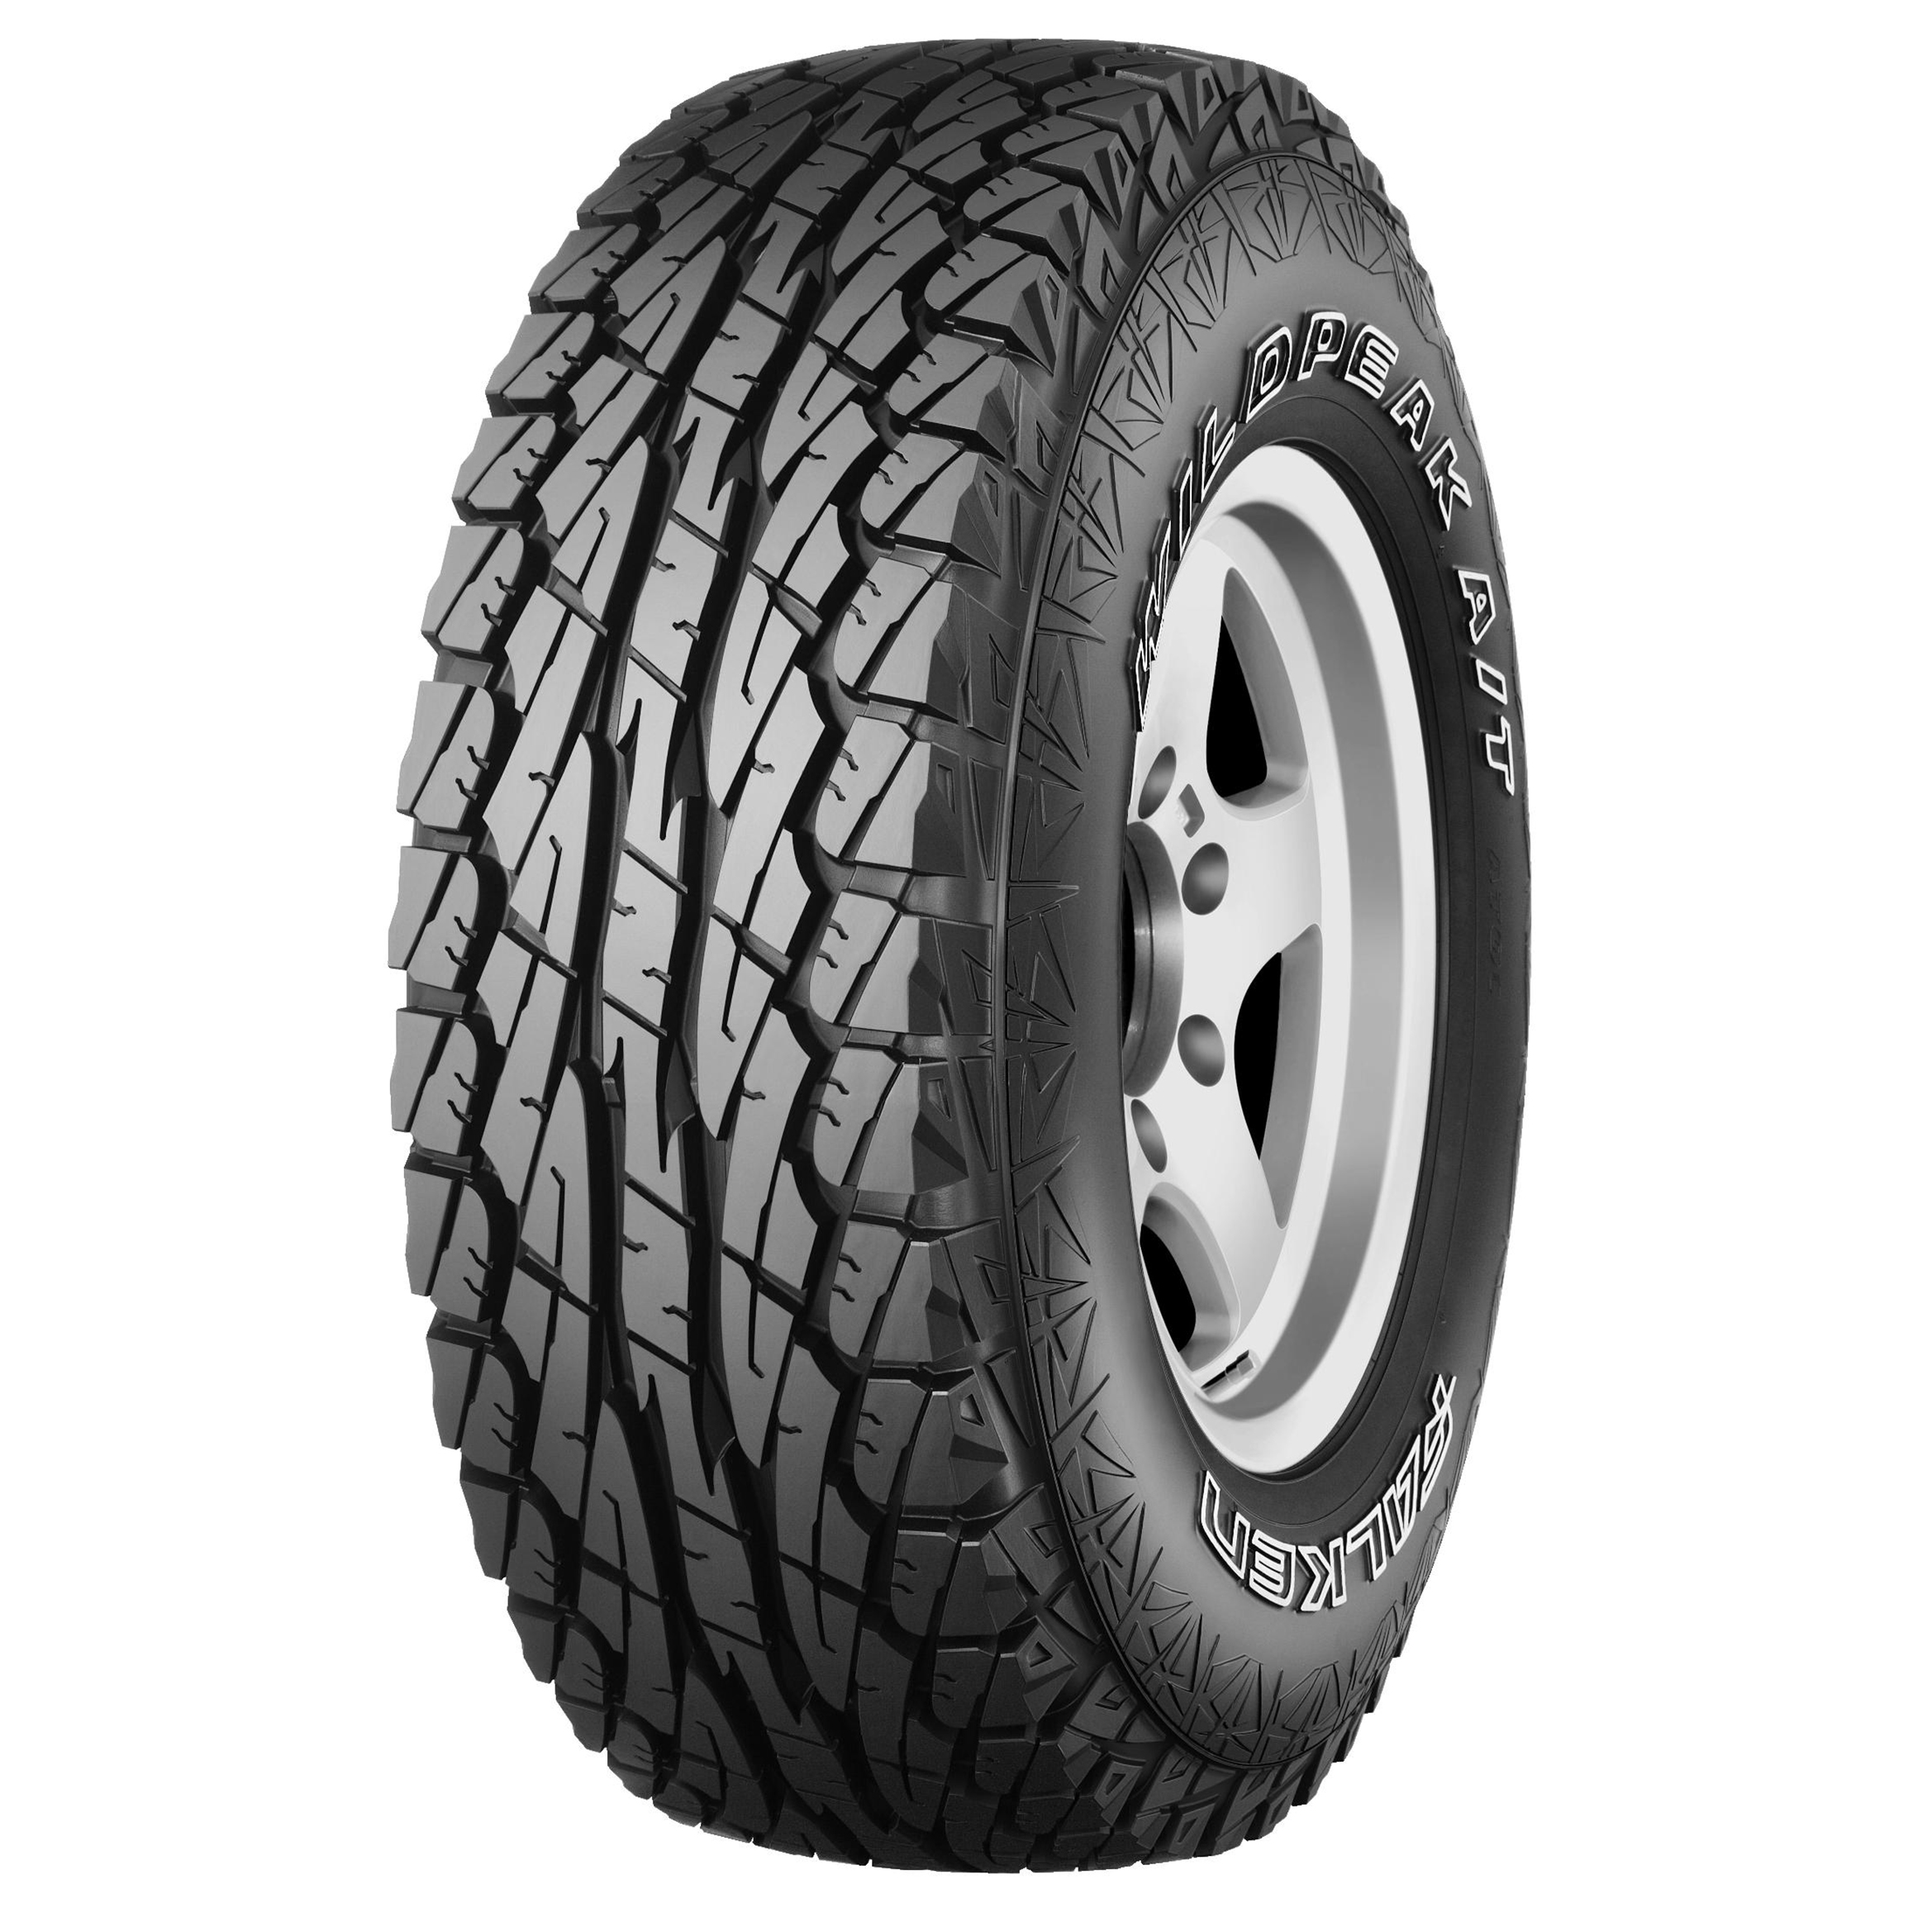 Falken AT01 235/65 R 17 Tubeless 104 T Car Tyre